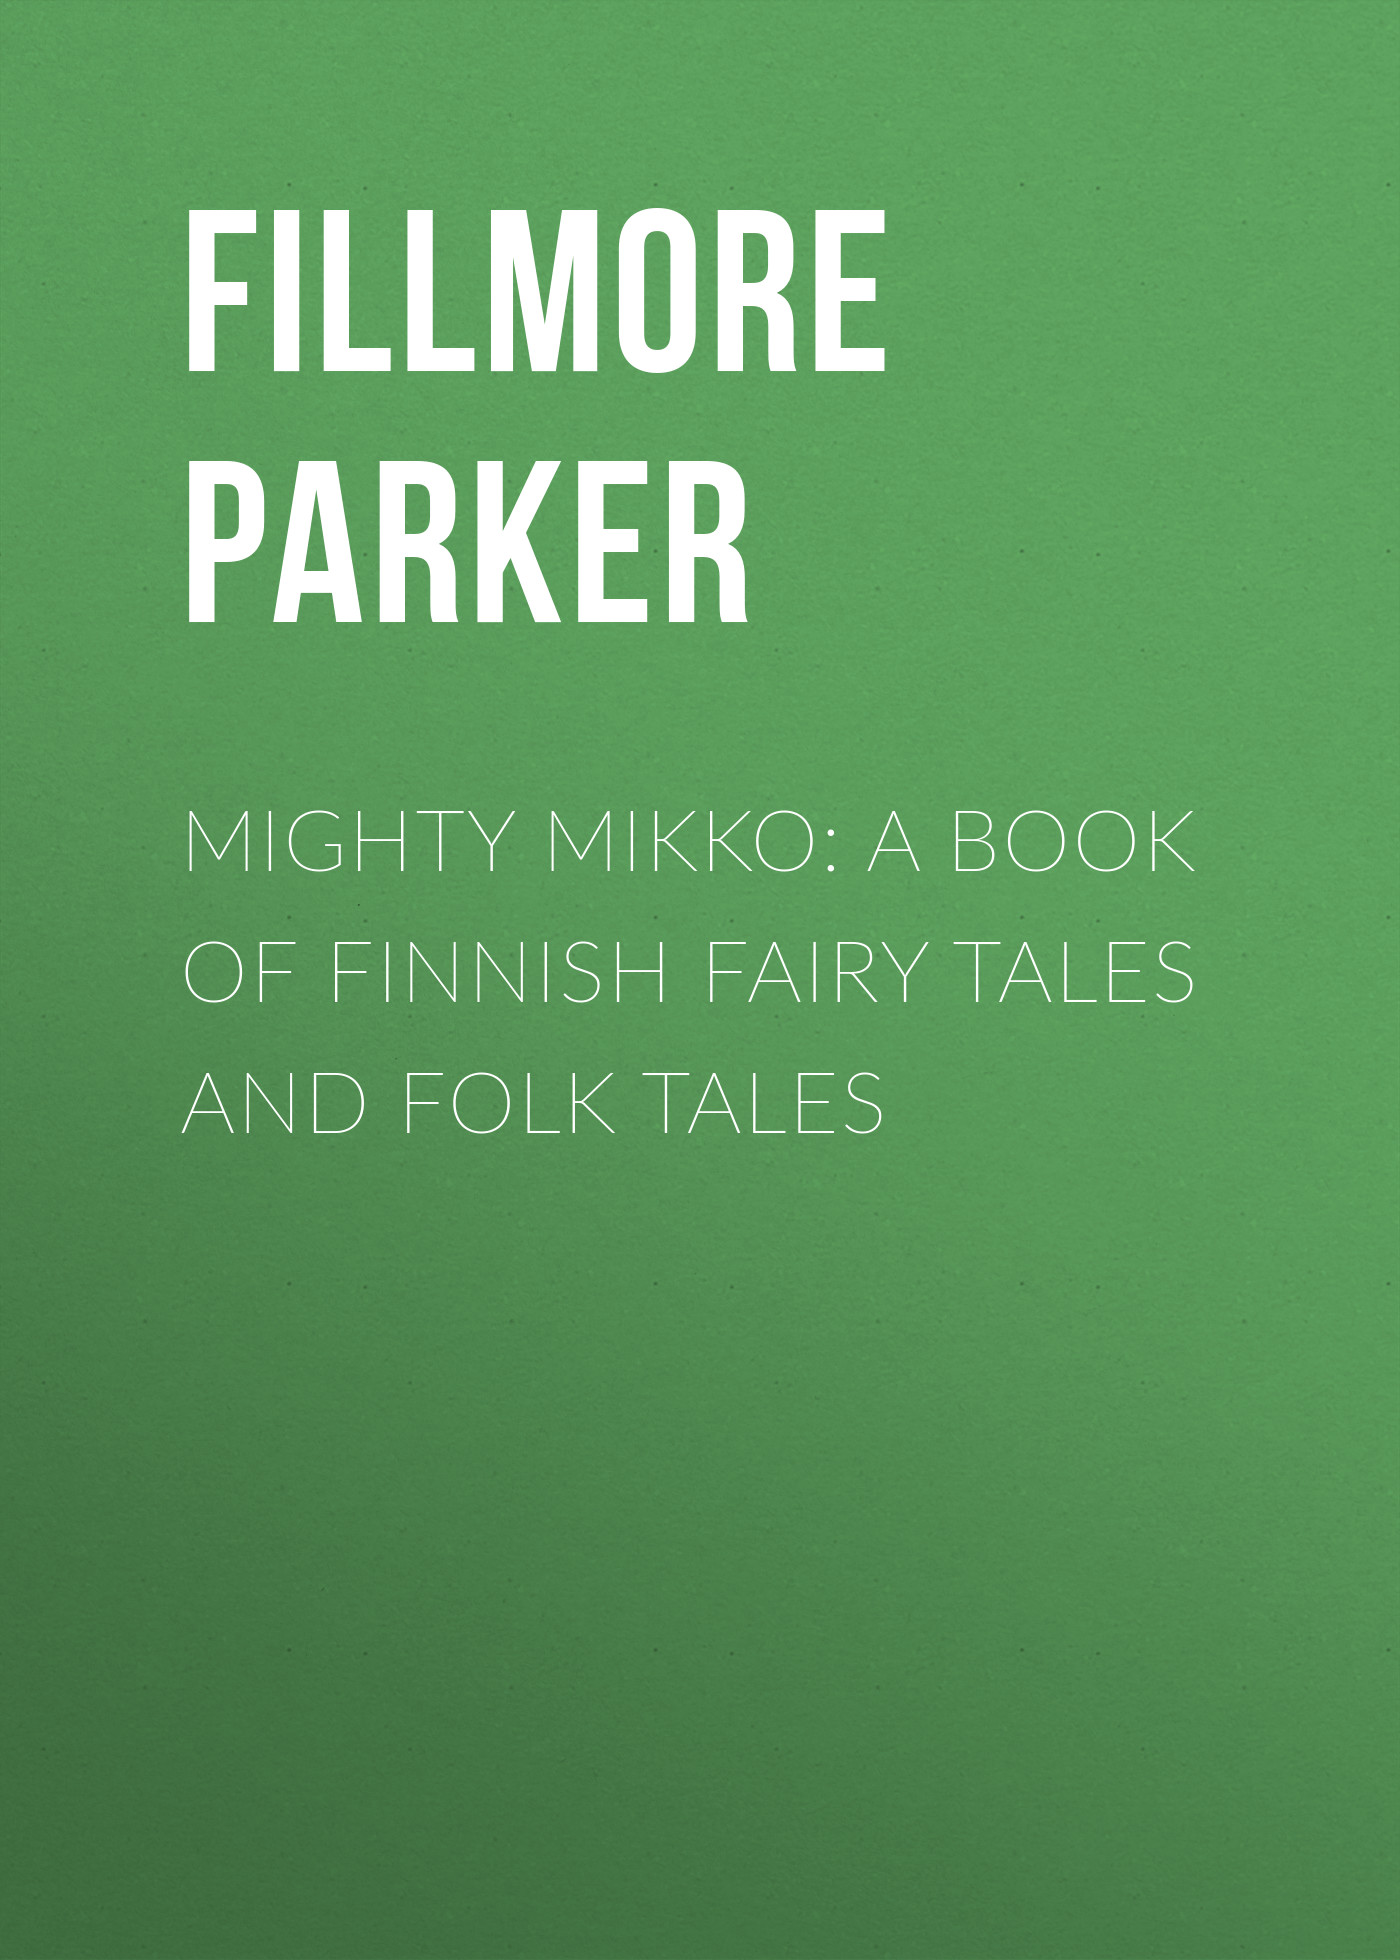 Fillmore Parker Mighty Mikko: A Book of Finnish Fairy Tales and Folk Tales цена в Москве и Питере